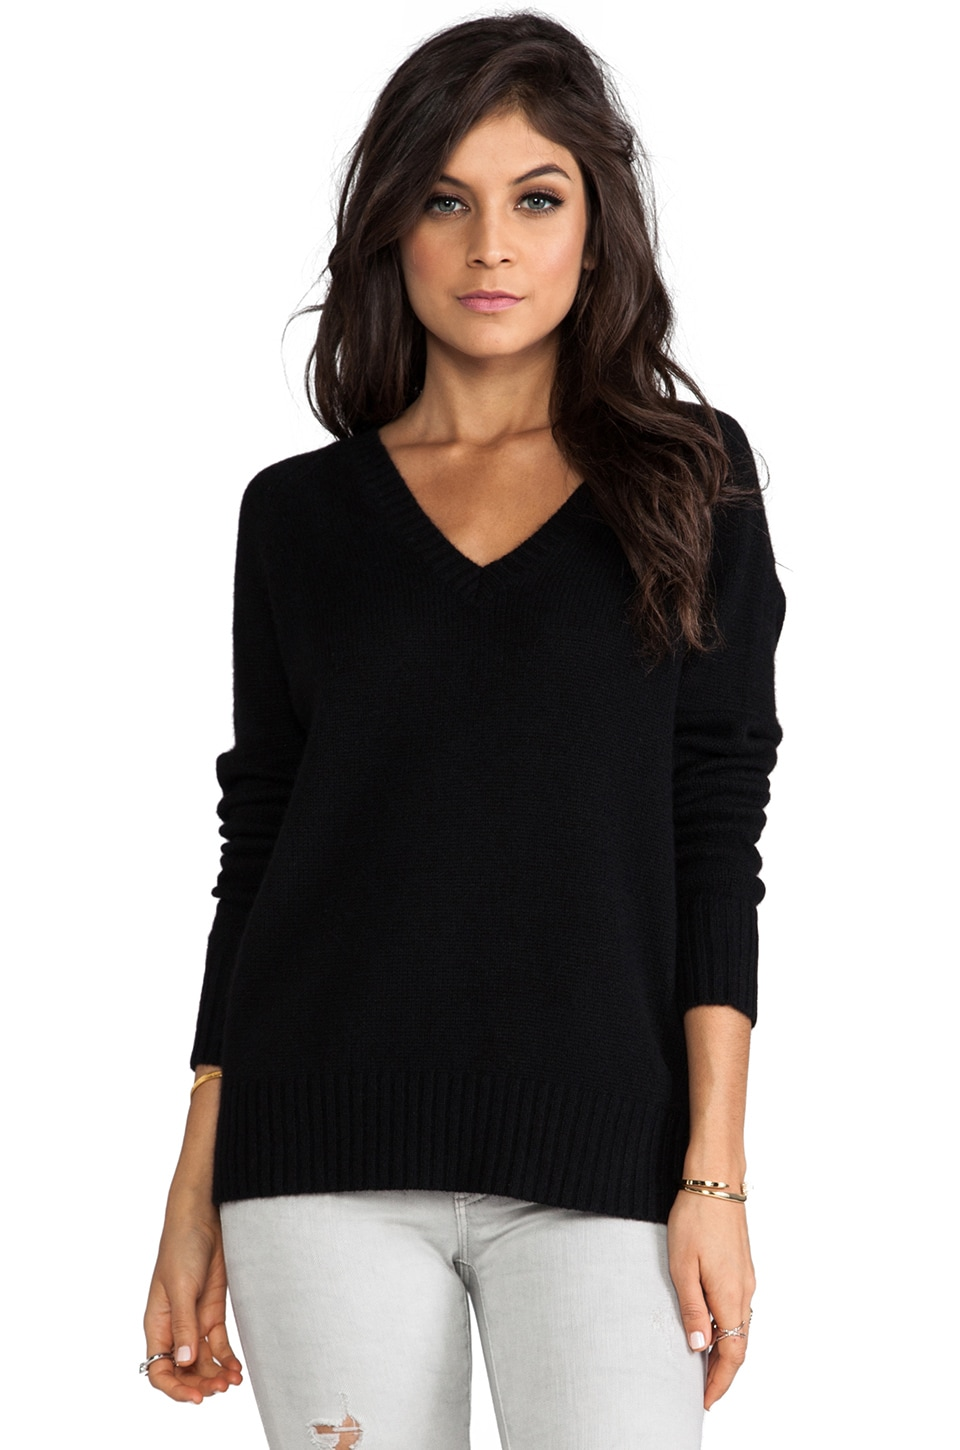 360 Sweater Luci Cashmere Sweater in Black